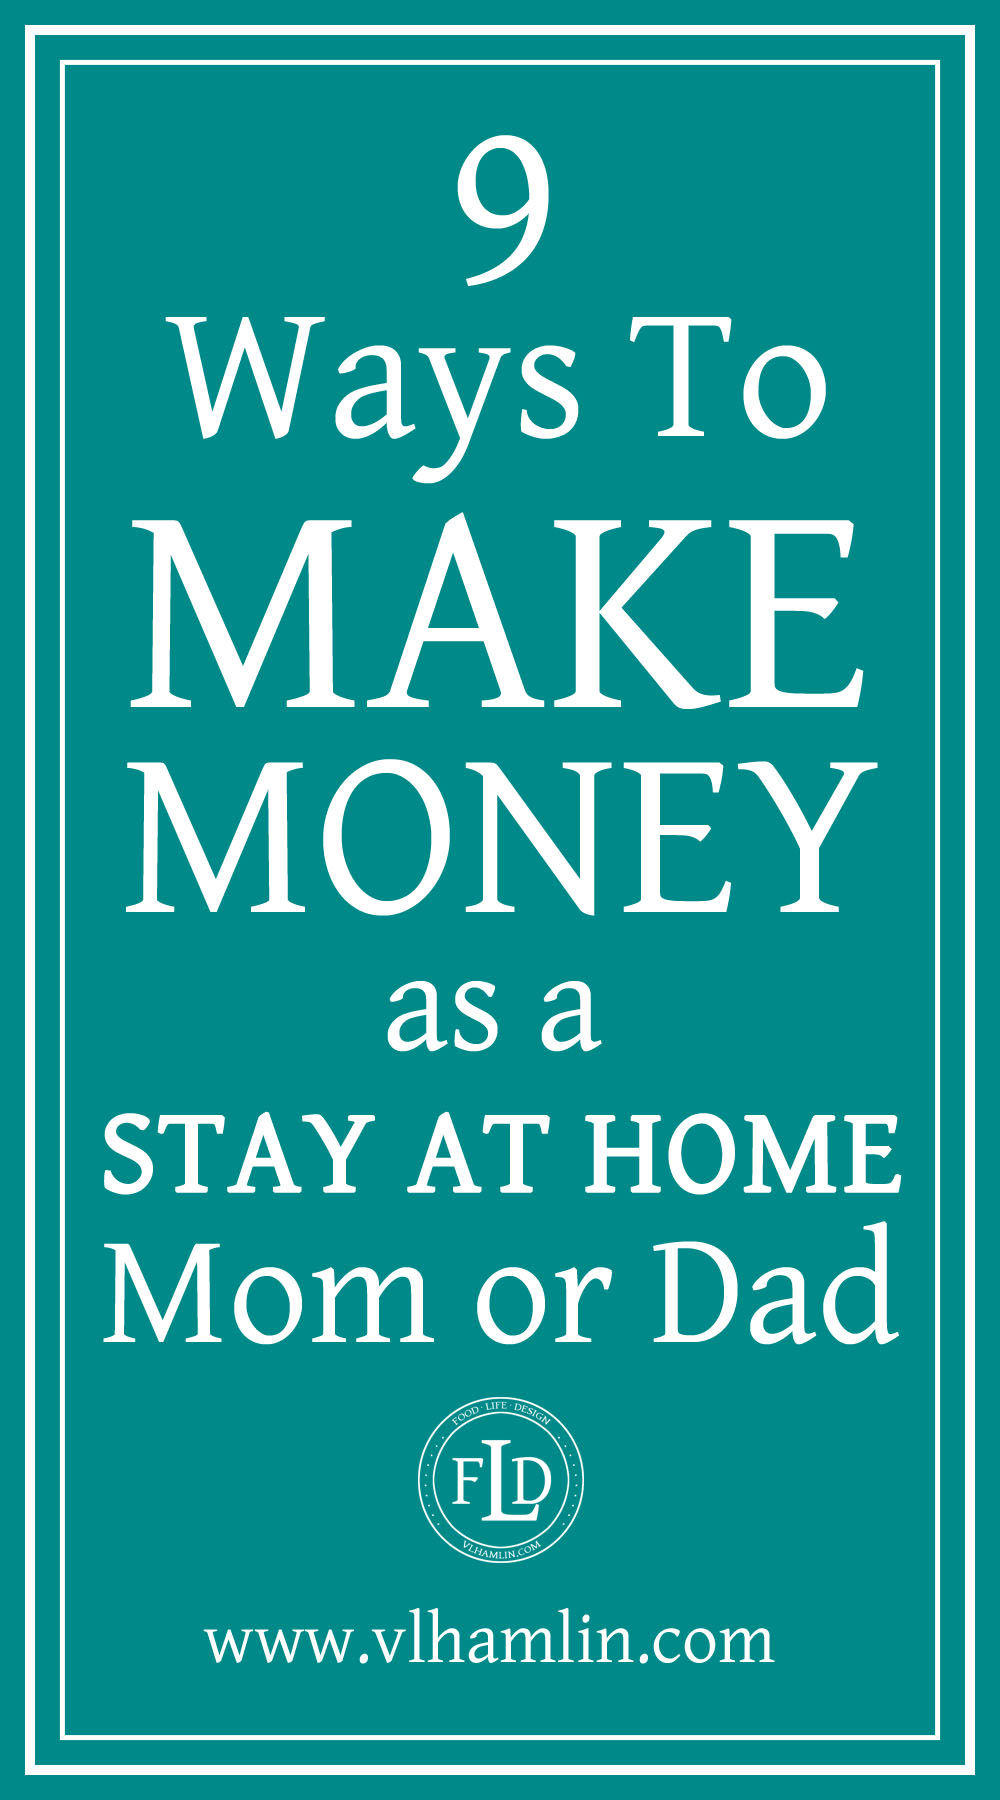 9 Ways to Start Making Money as a Stay At Home Mom or Dad